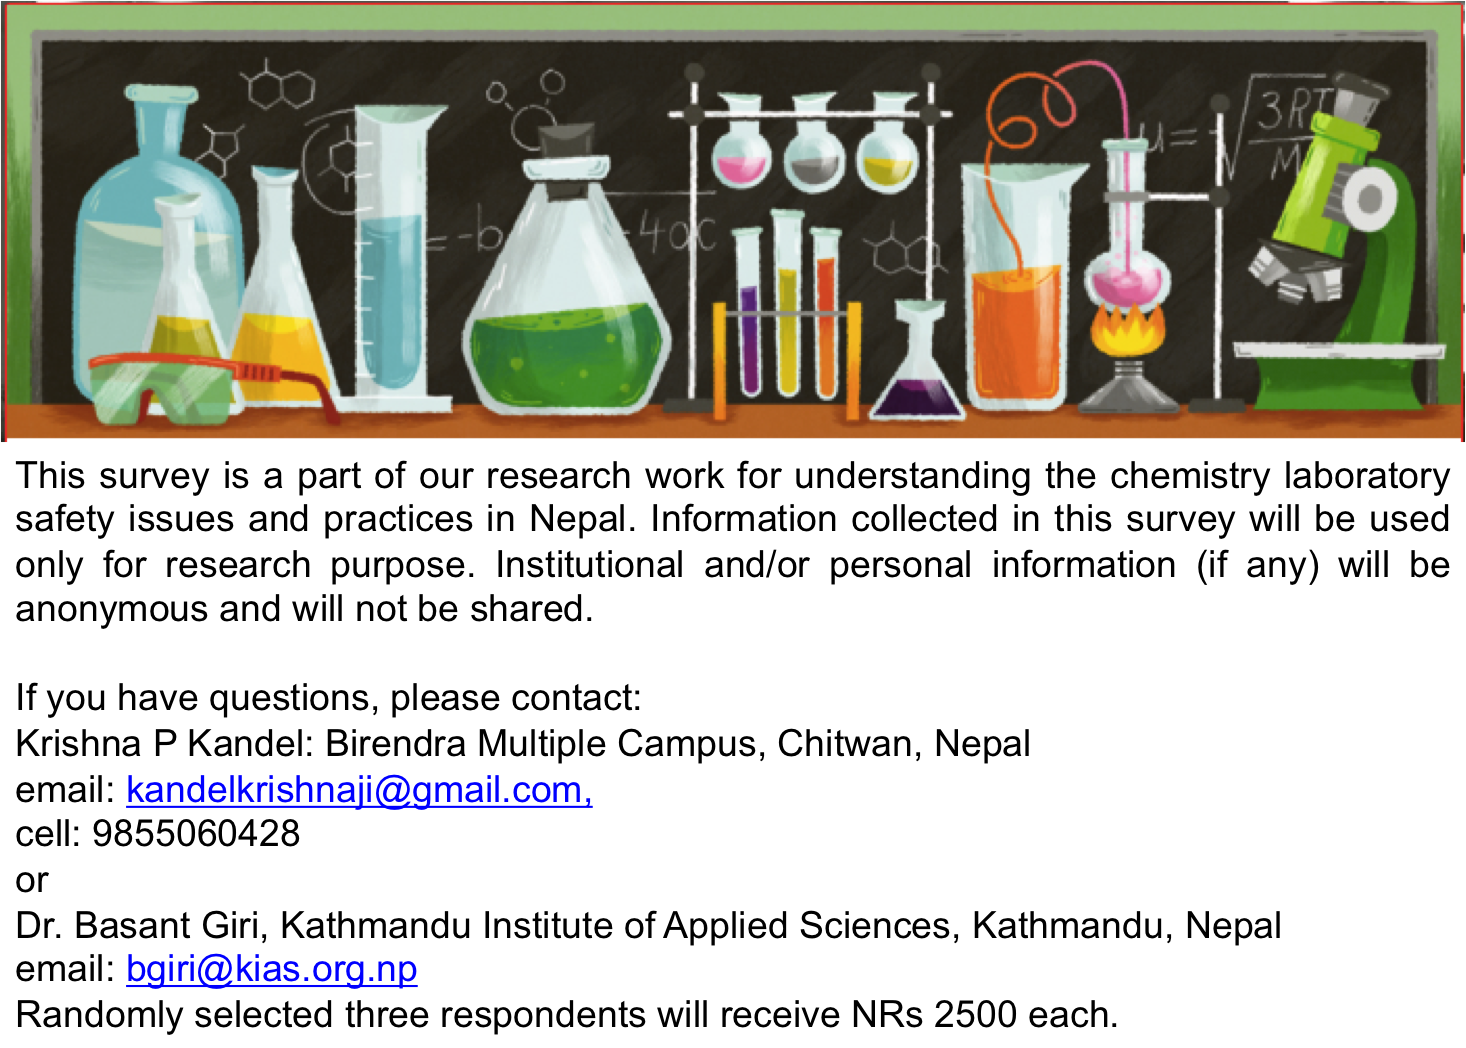 Do you teach chemistry in Nepal? Please complete the survey. Click on the information below.